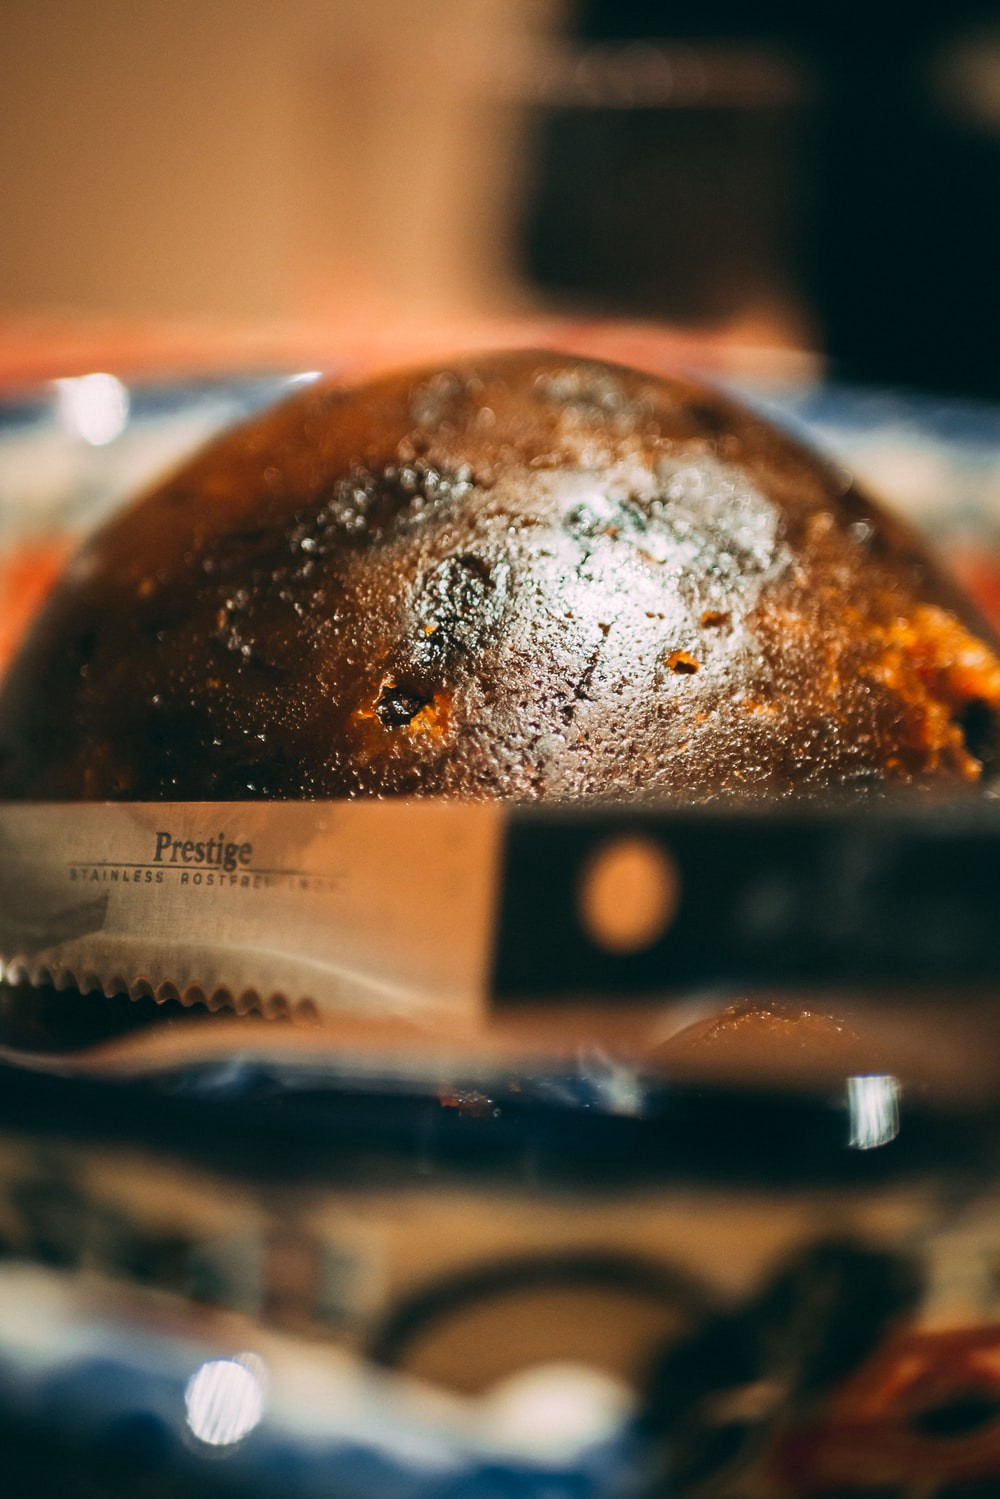 A delicious looking Christmas pudding